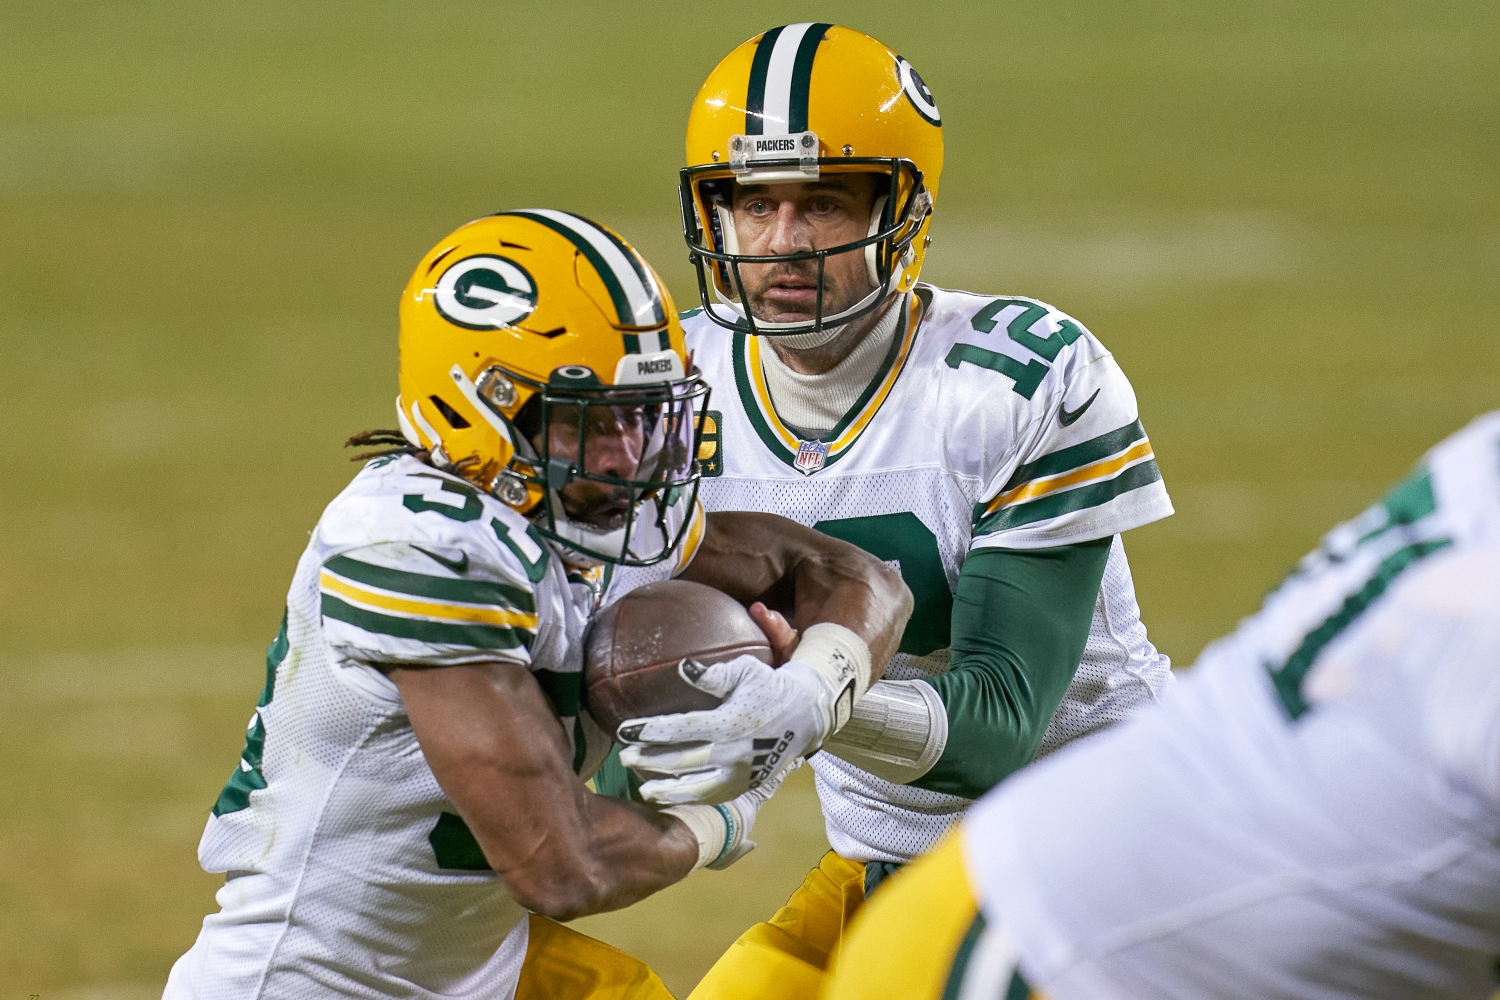 Aaron Rodgers hands the ball off to Packers RB Aaron Jones during a game against the Chicago Bears from the 2020 season.